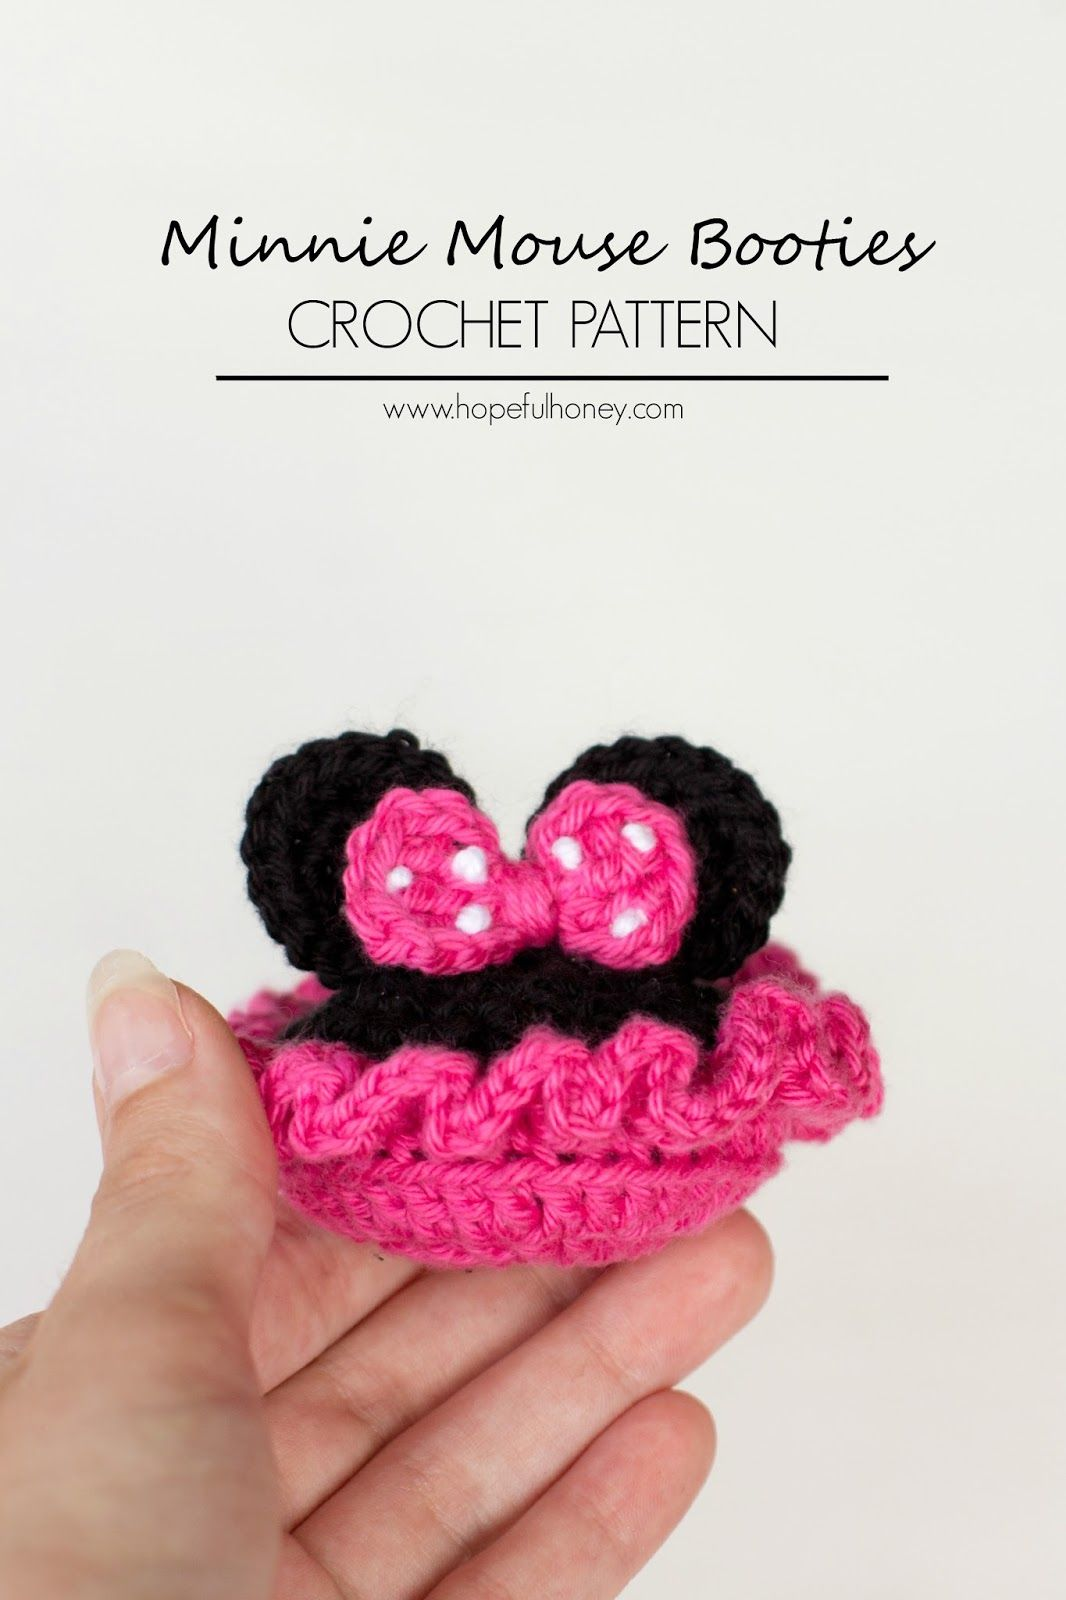 Minnie Mouse Inspired Baby Booties - Free Crochet Pattern